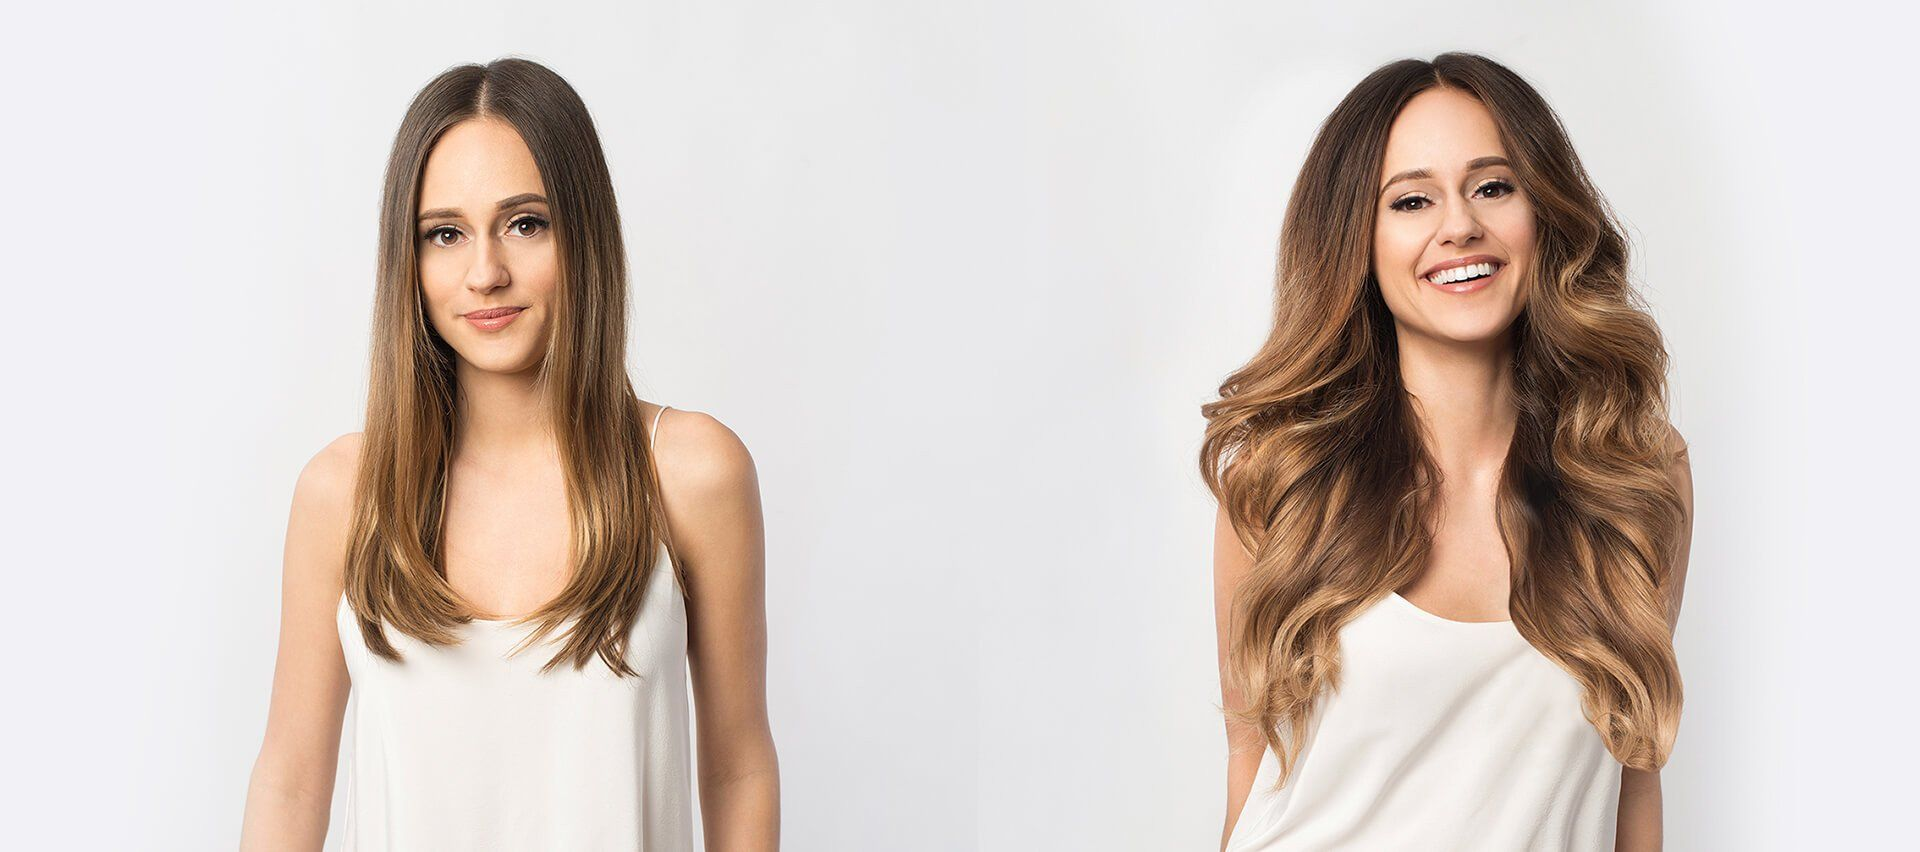 New Clip In Luxury Wigs For the Modern Day Woman